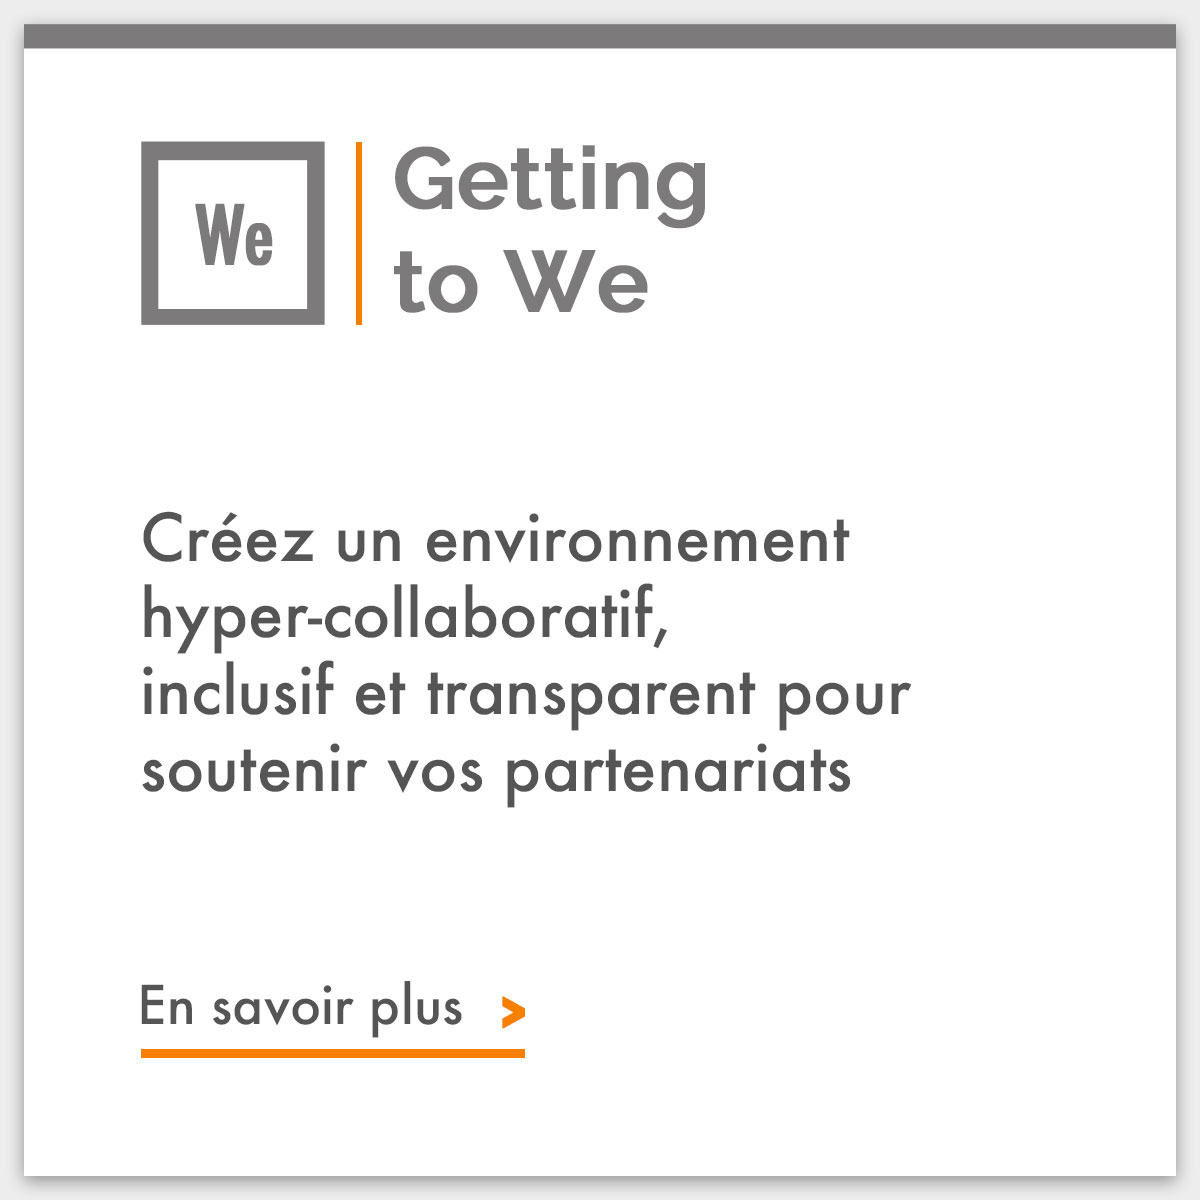 Getting to We